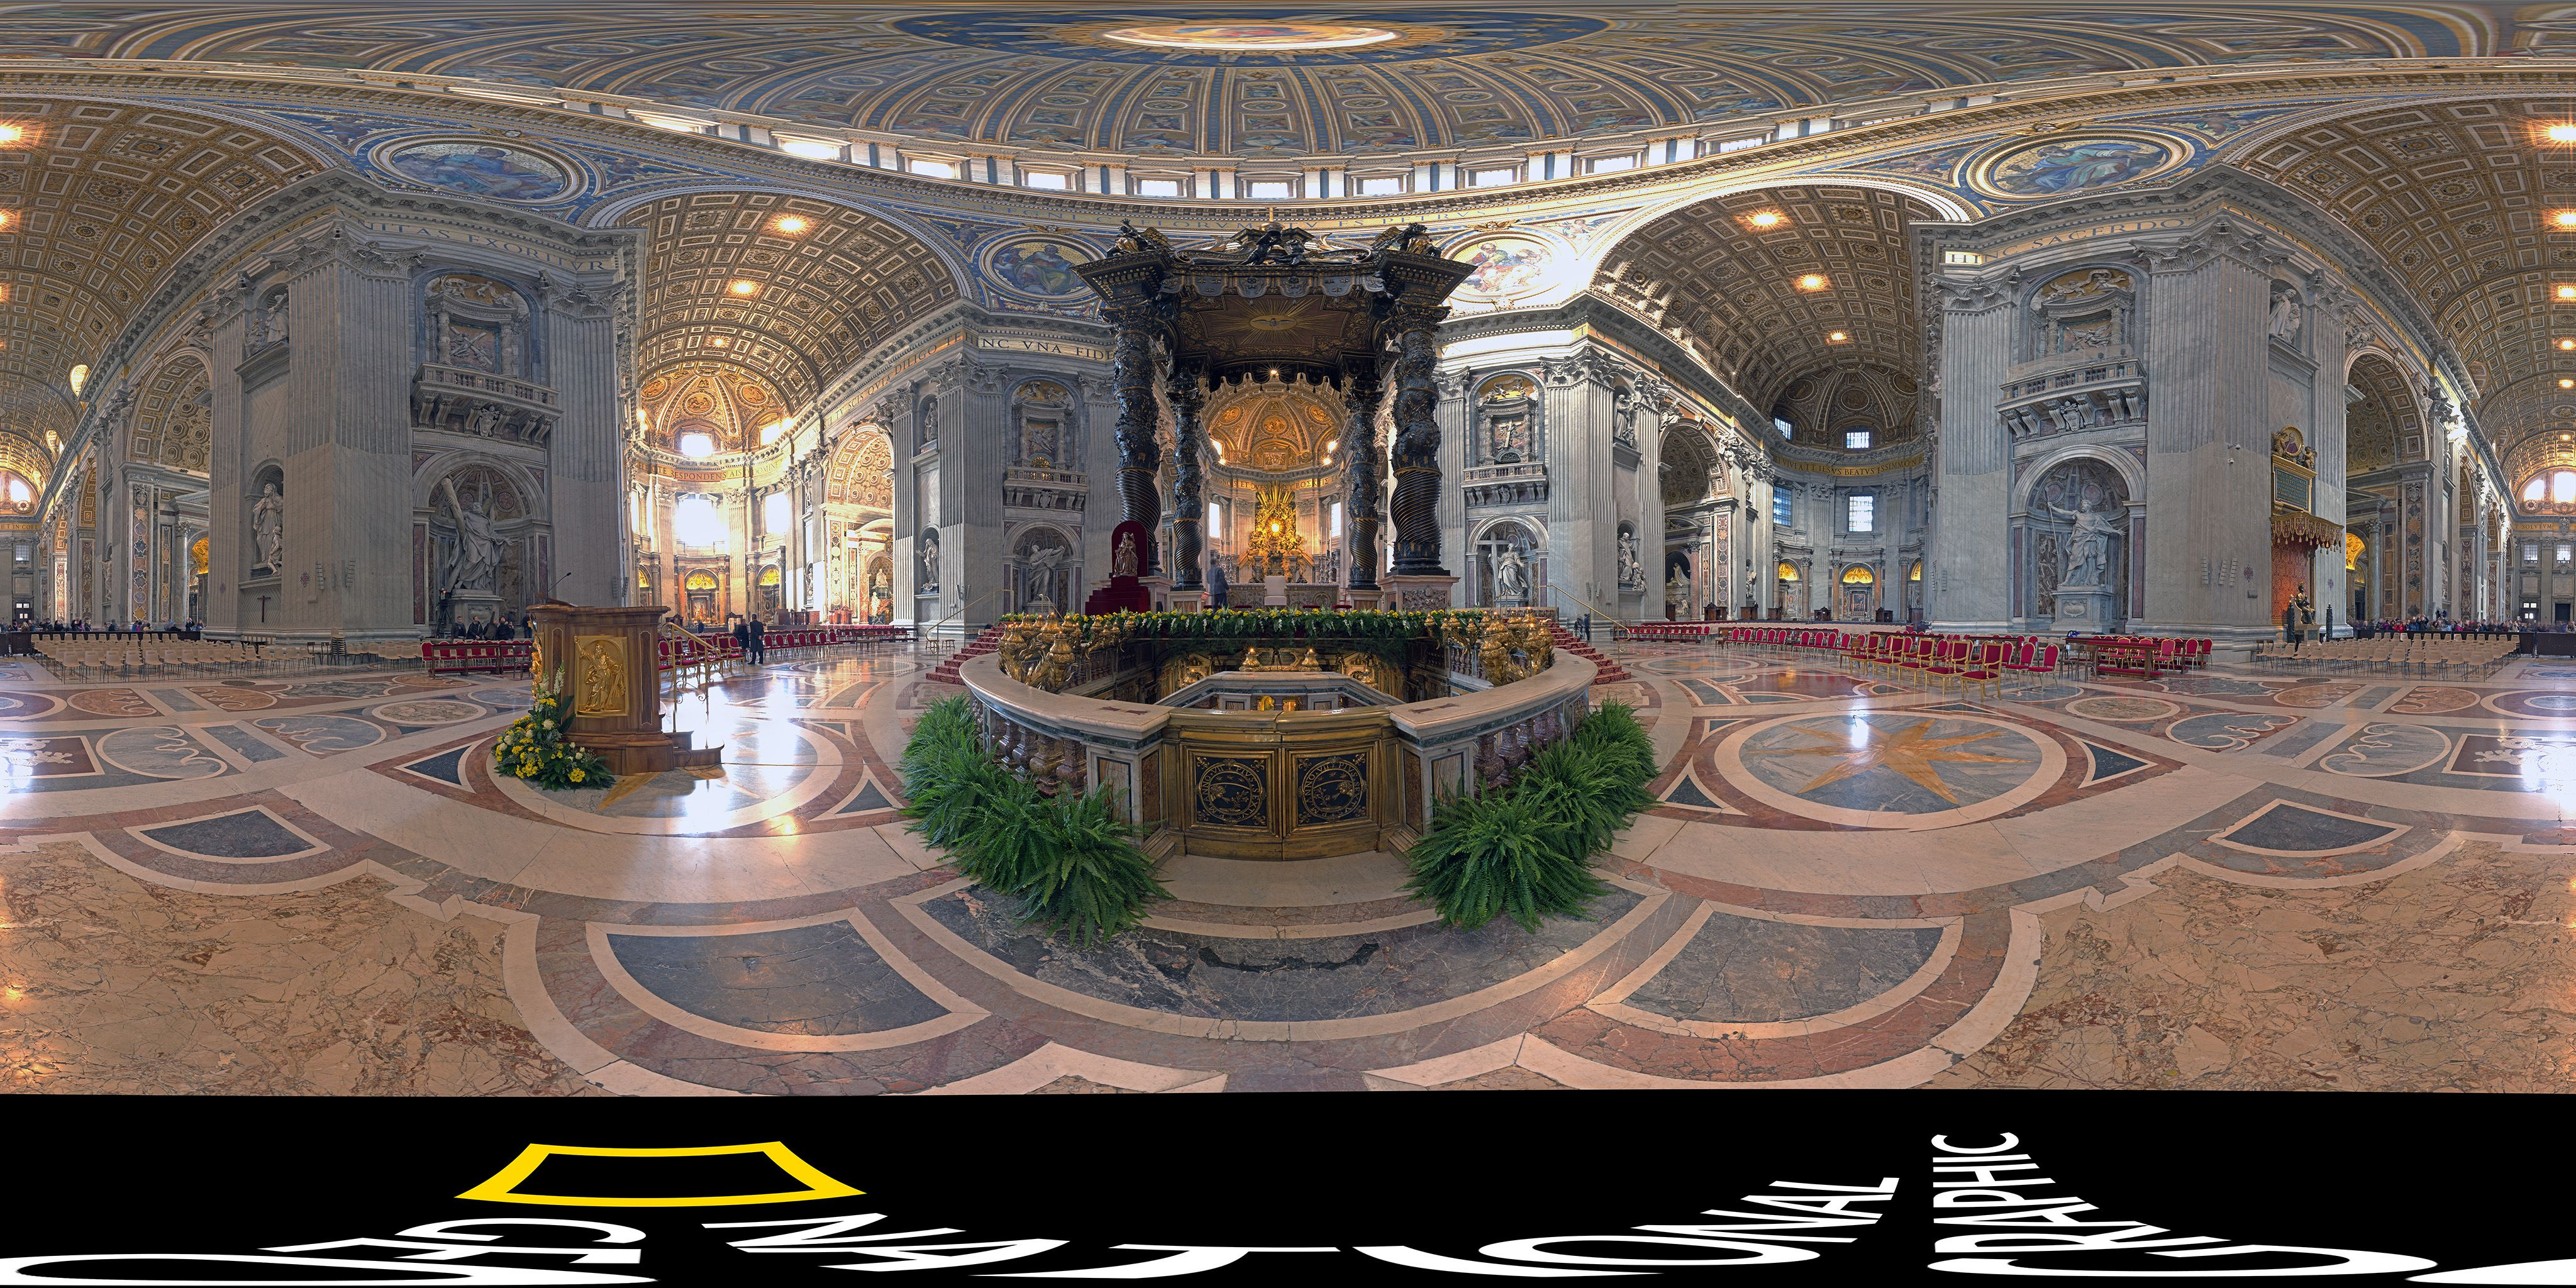 Take Amazing 360° Tour of St. Peter's in Vatican City From